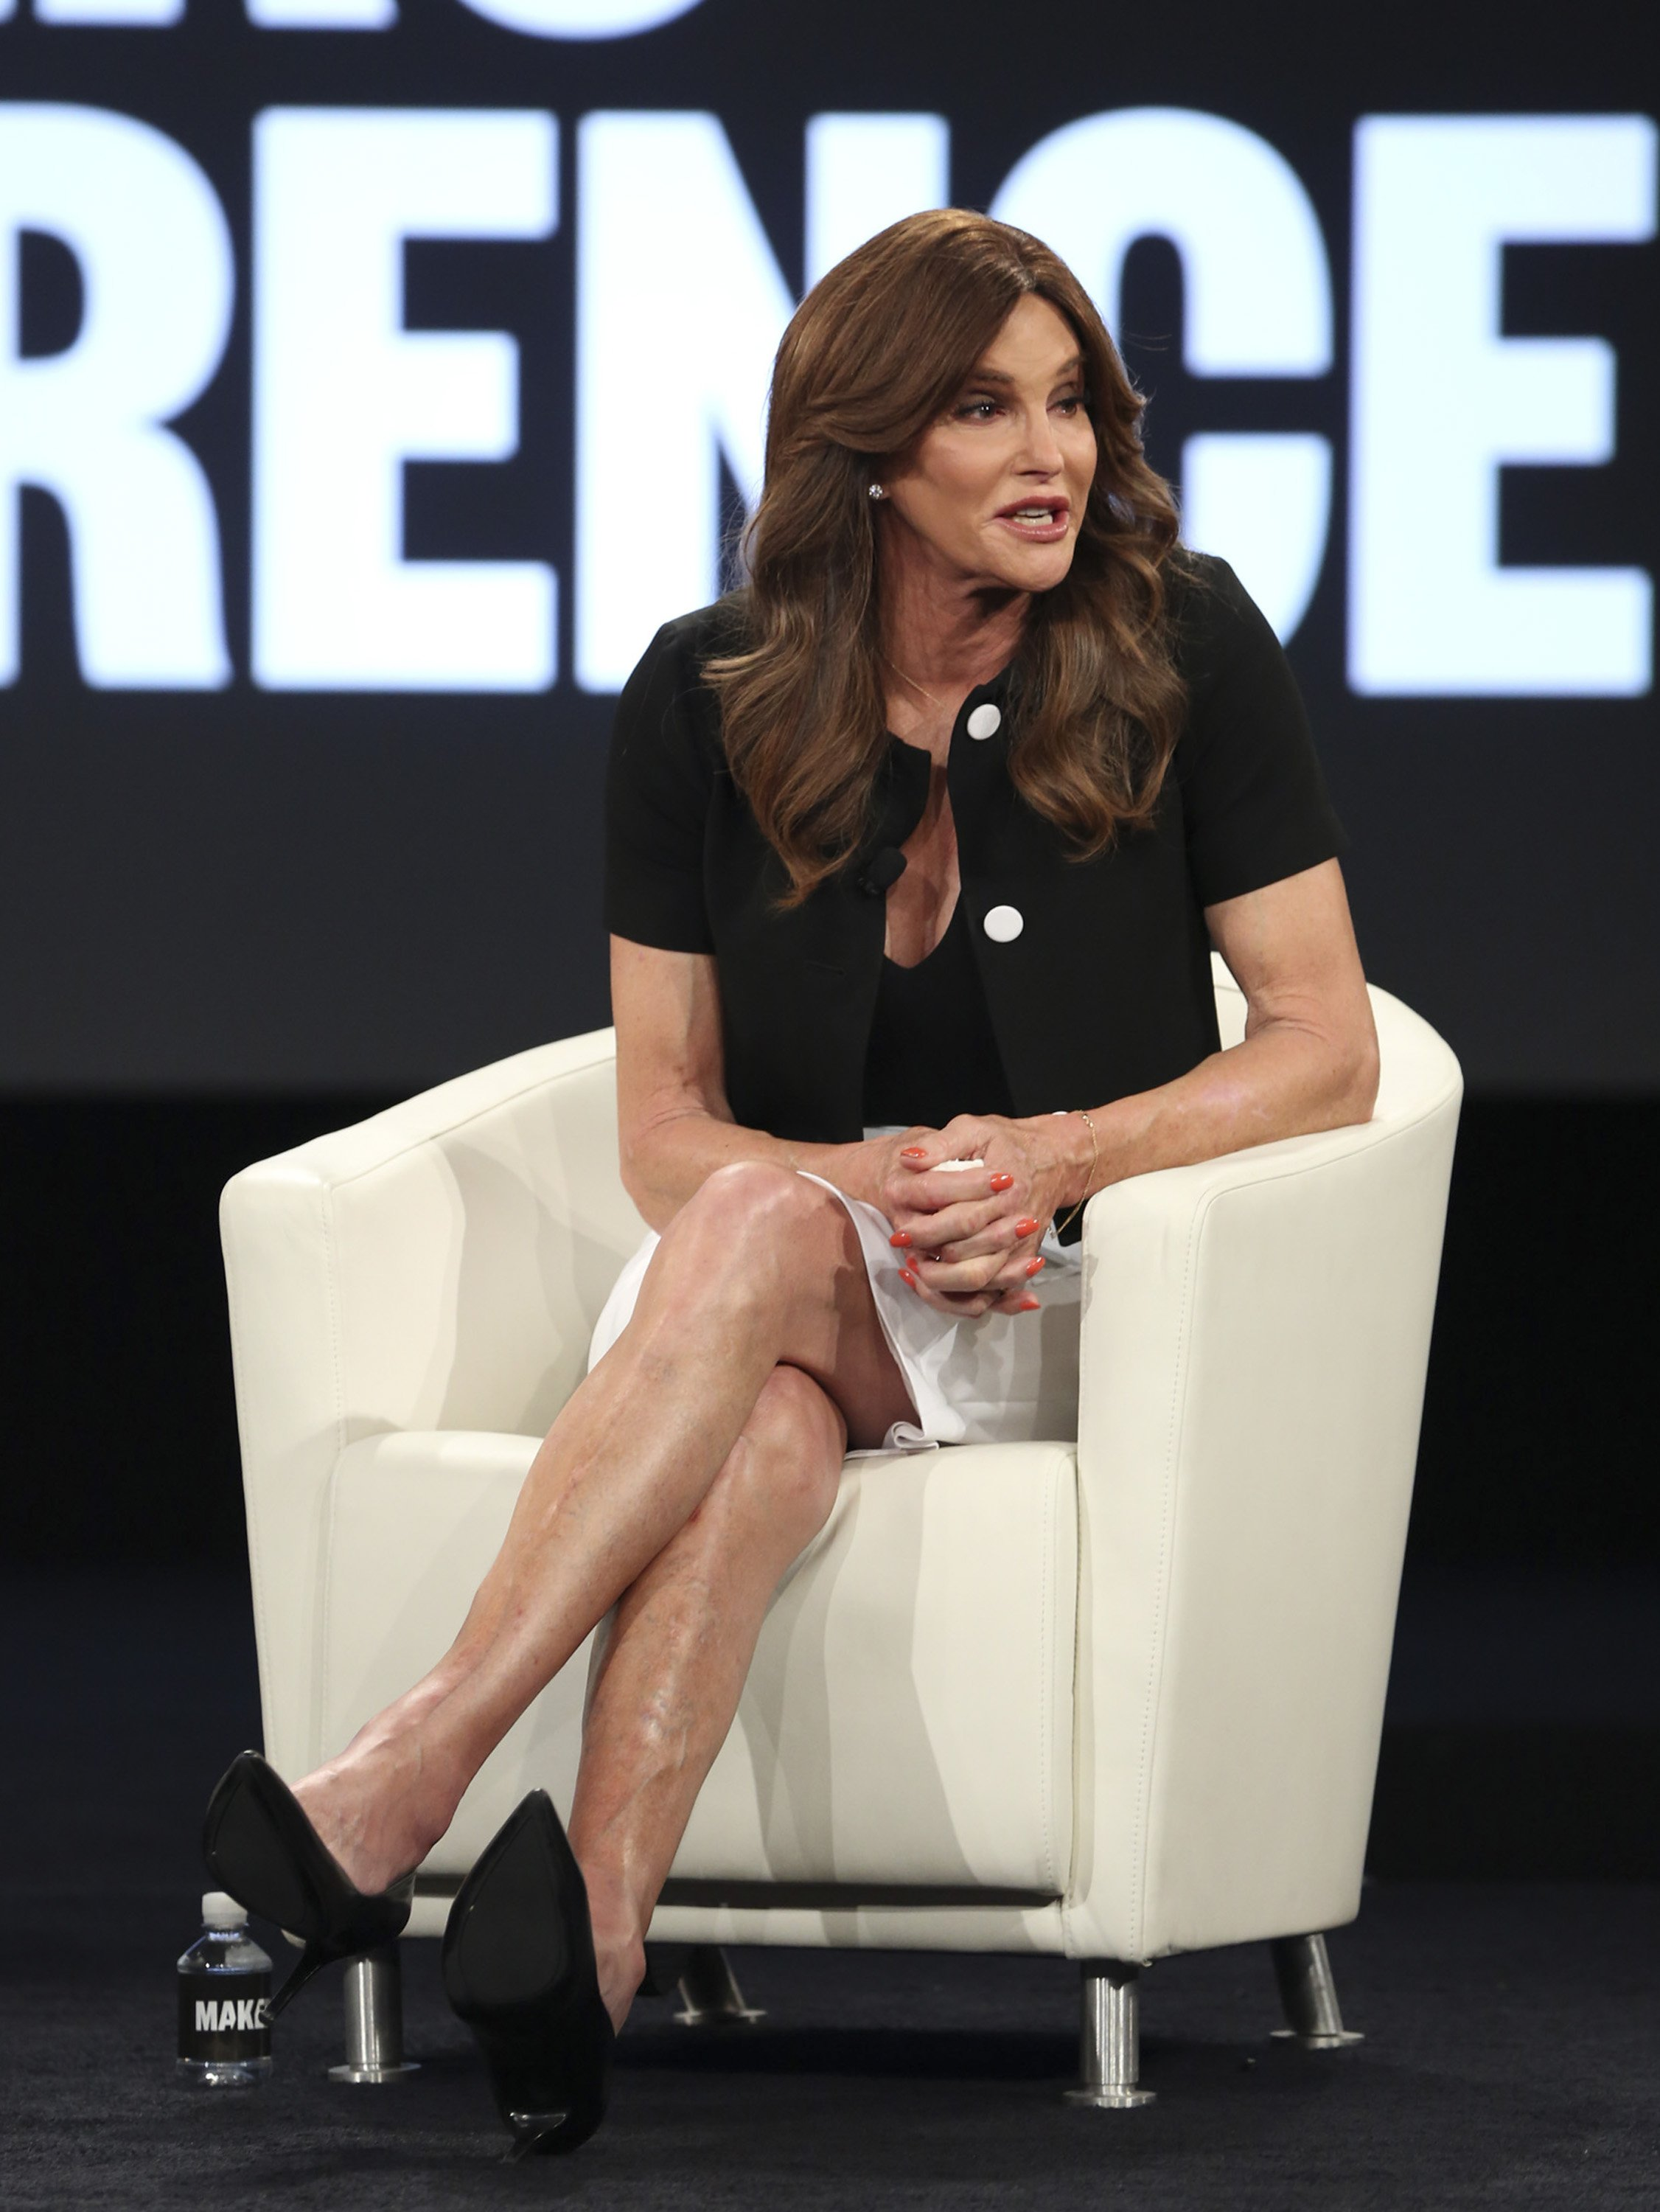 Caitlyn Jenner at the MAKERS Conference Day 2 on February 2, 2016, in Rancho Palos Verdes, California | Photo: Getty Images